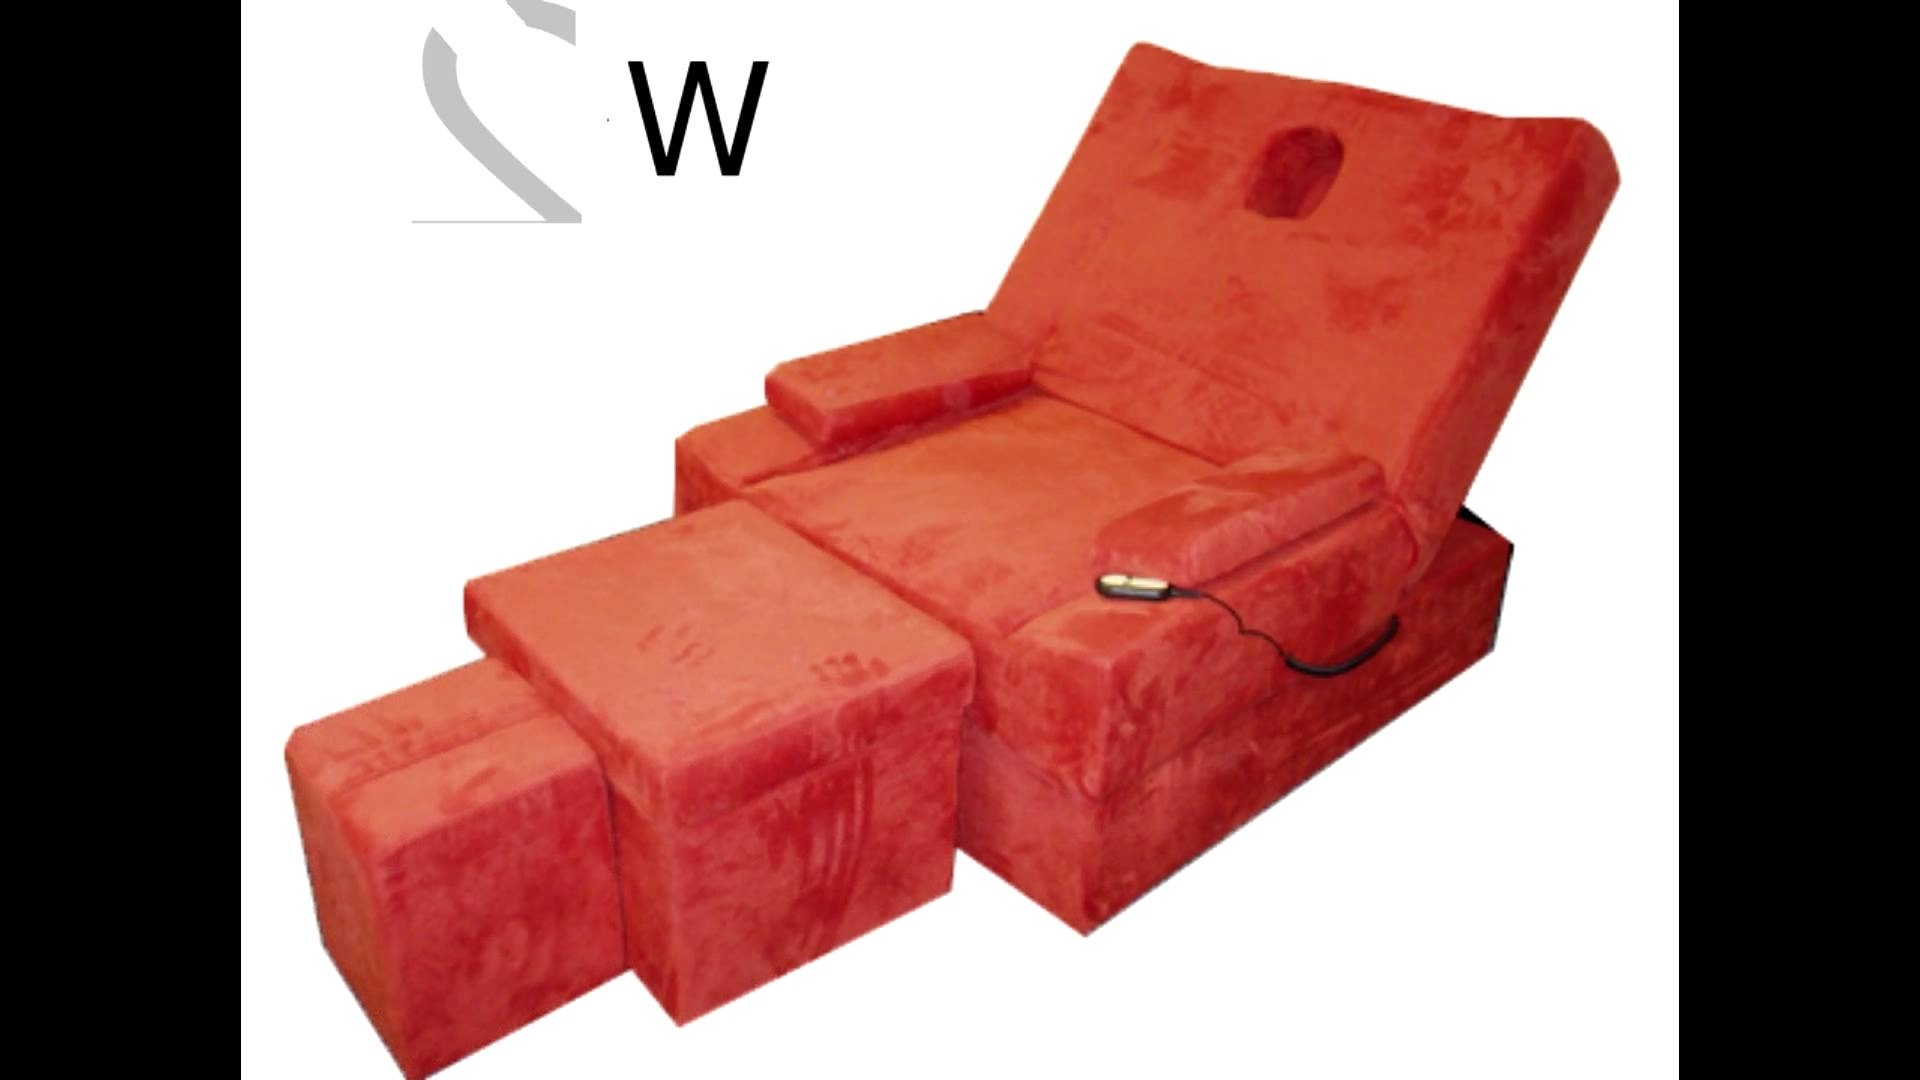 Electric Foot Massage Sofa Set 电动足浴沙发 Youtube Throughout Preferred Foot Massage Sofas (View 13 of 20)